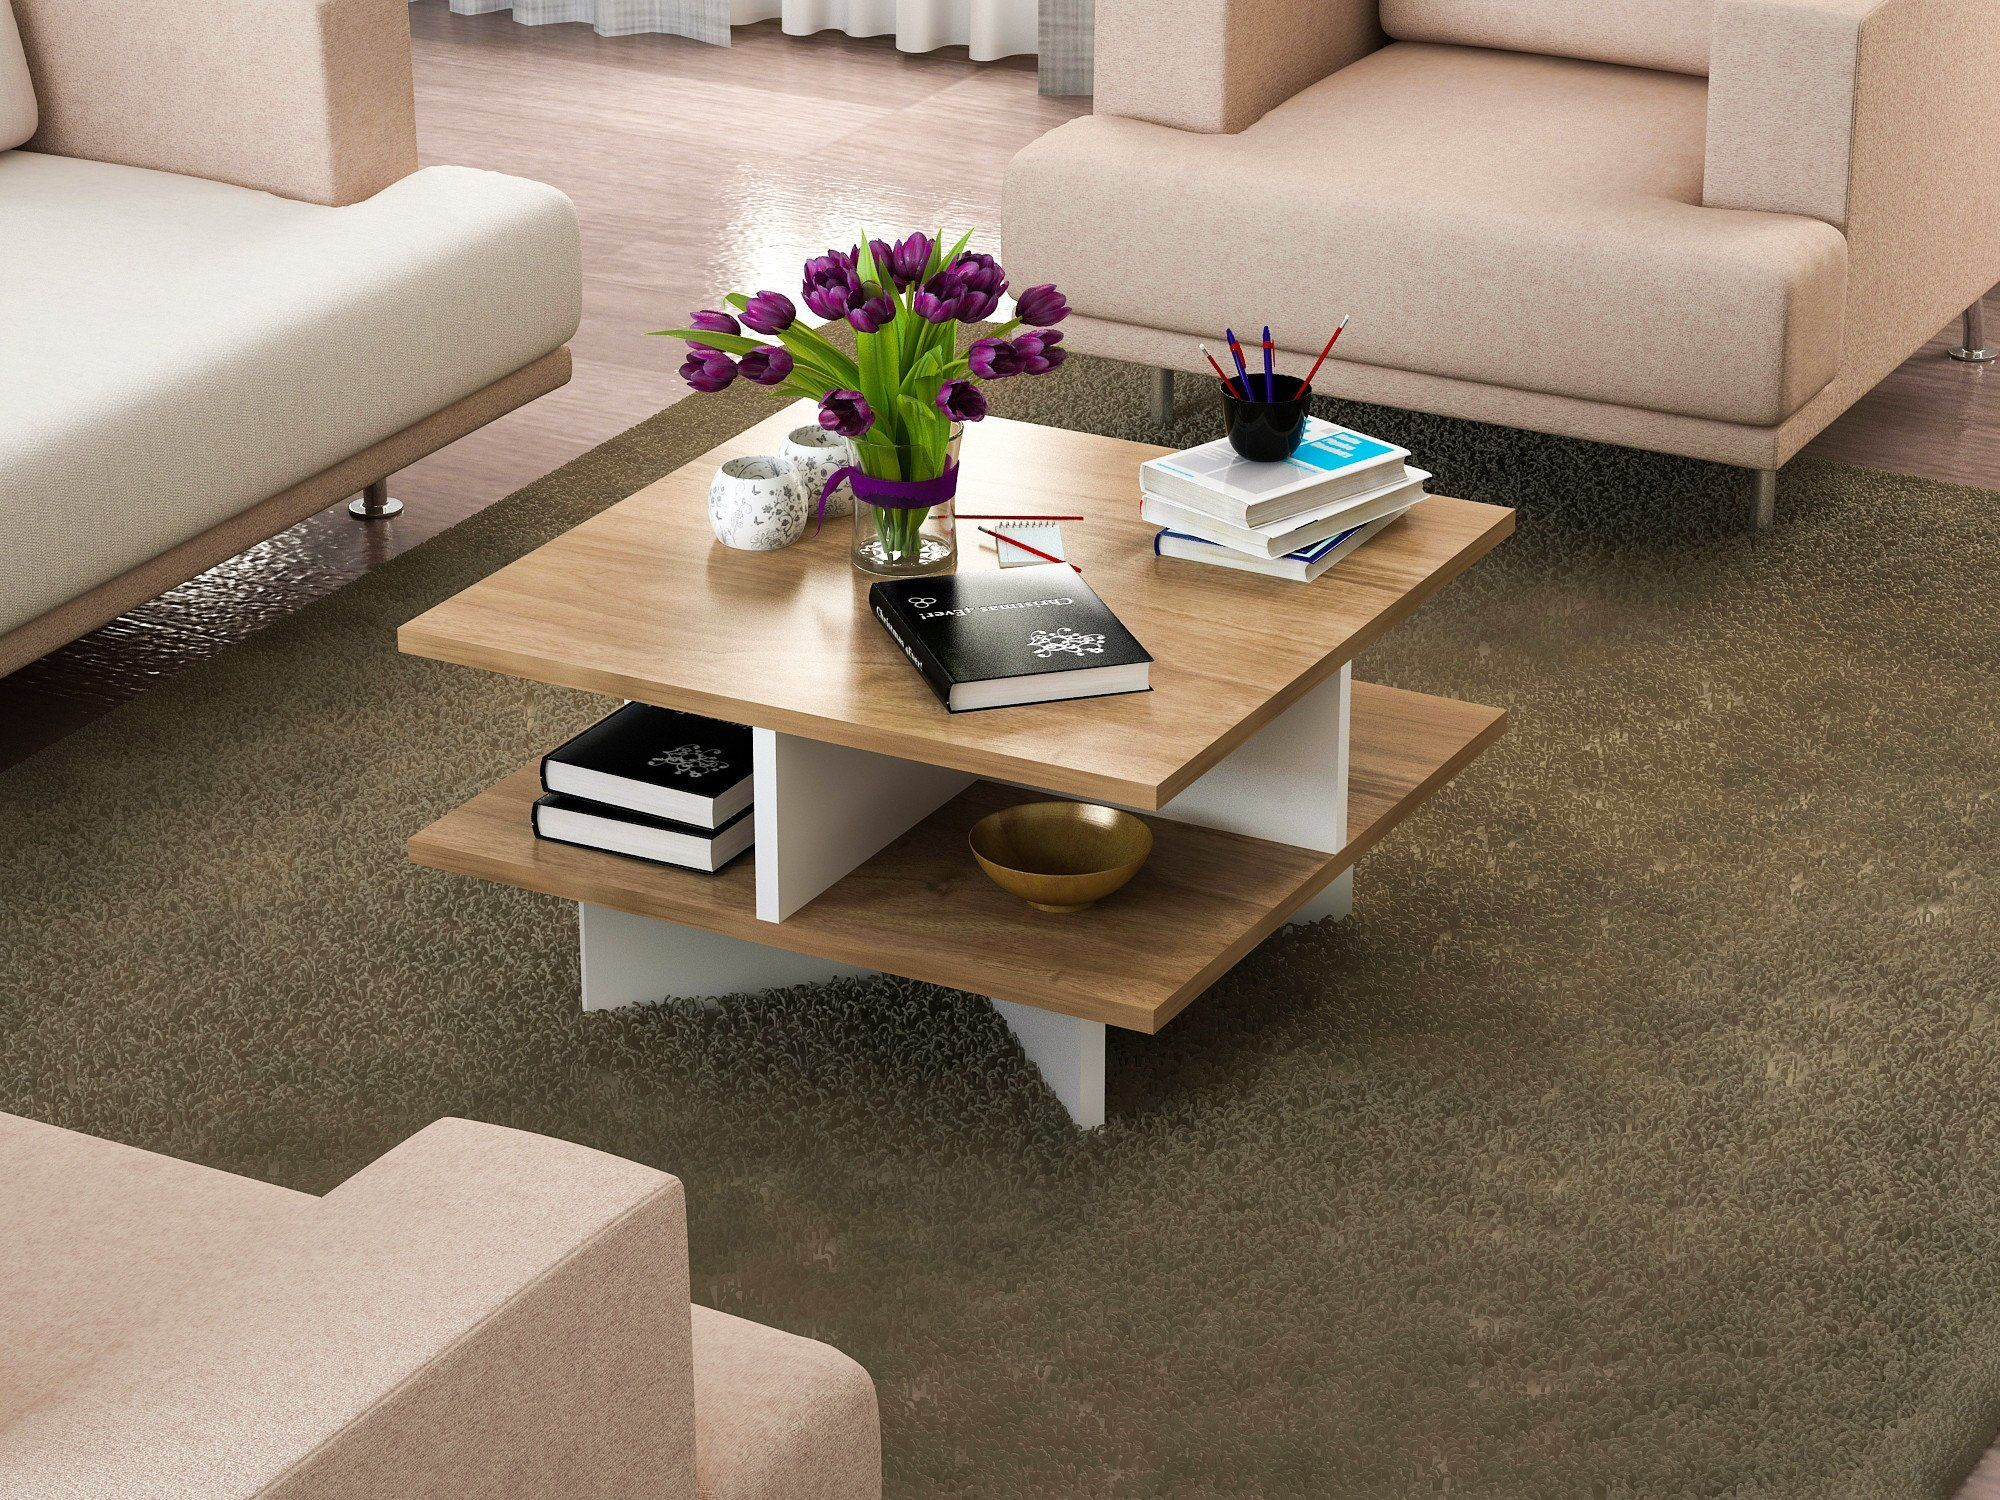 Lamodahome Modern Coffee Table Whitebrown Wooden Appearance Square Cocktail Table With Storage Multi Functional R Coffee Table Square Cocktail Table Furniture [ 1500 x 2000 Pixel ]